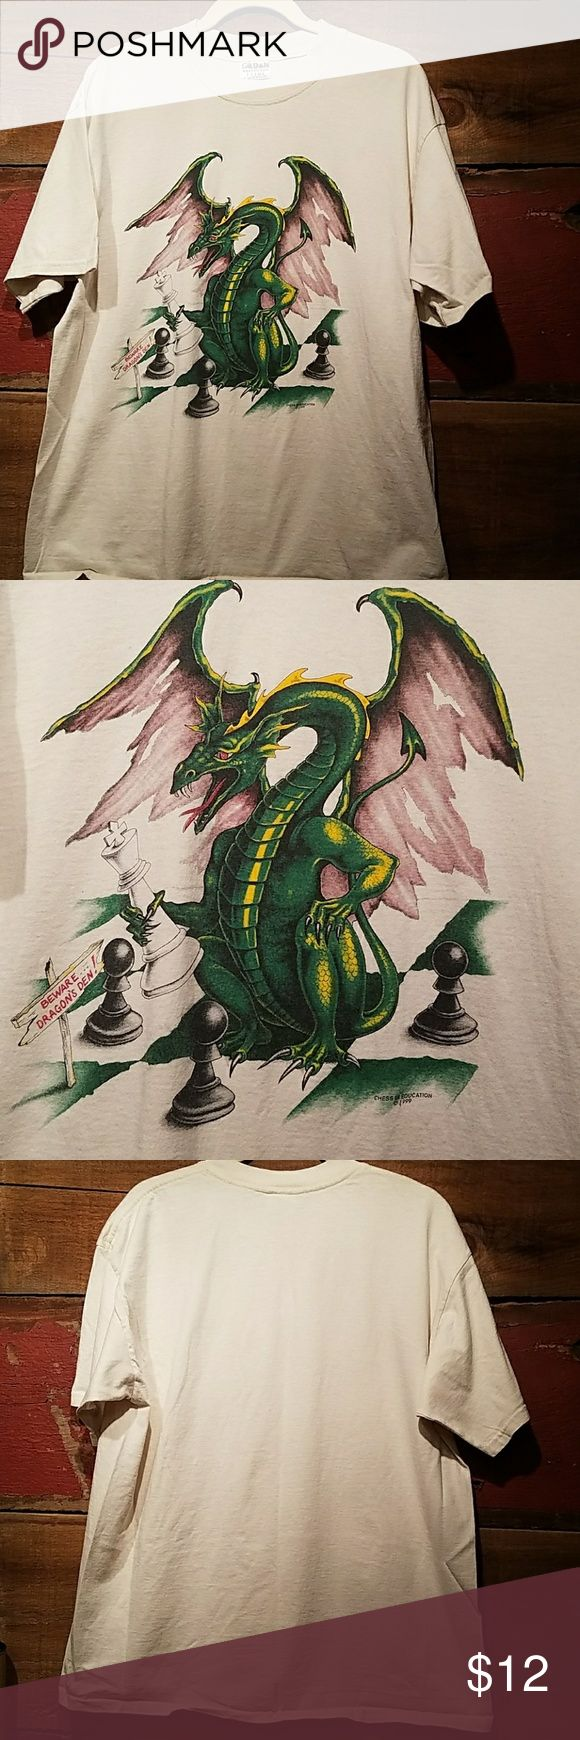 💥Buy 3 Get 1 Free💥 Dragon Chess Tee Awesome dragon chess tee, men's size XL. Buy 3 get 1 free on men's shirts! I will discount the bundle ☺ Shirts Tees - Short Sleeve